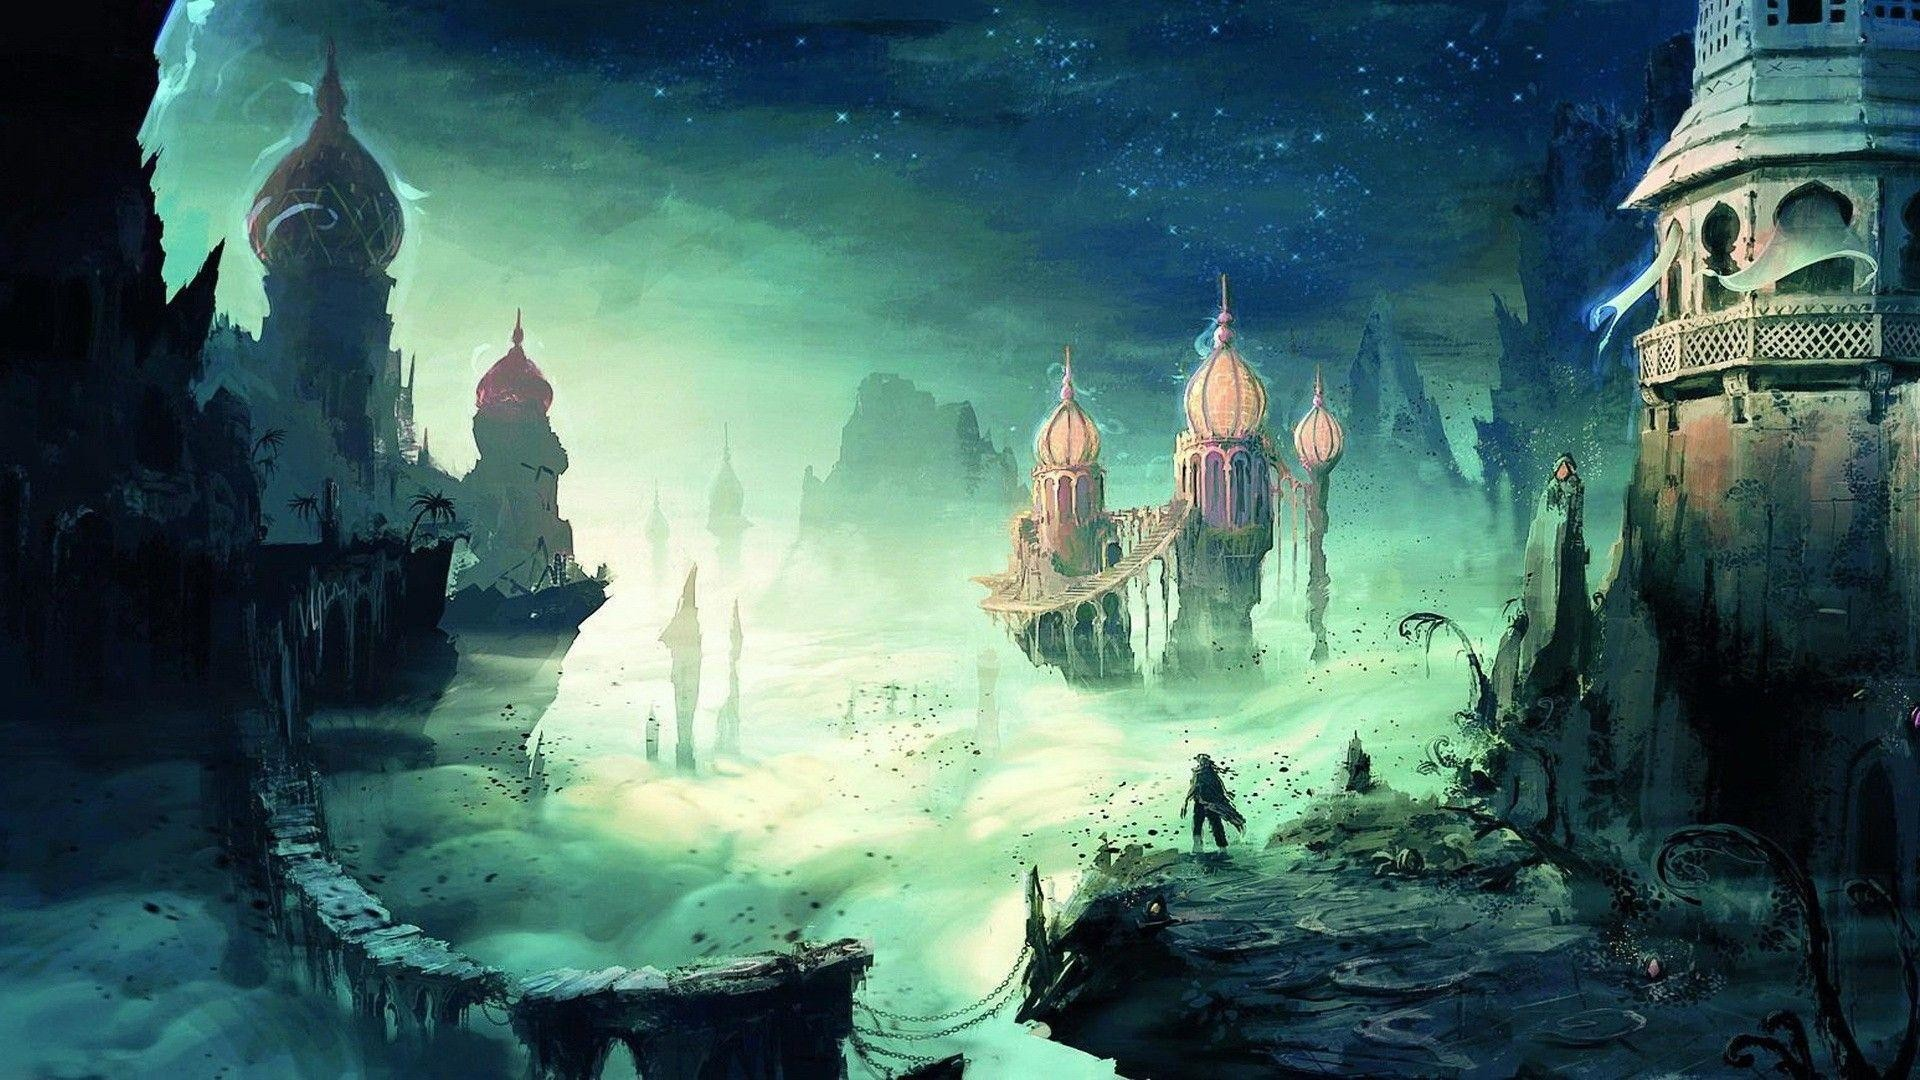 Res: 1920x1080, Download Prince of Persia Concept Art Wallpaper | Free Wallpapers